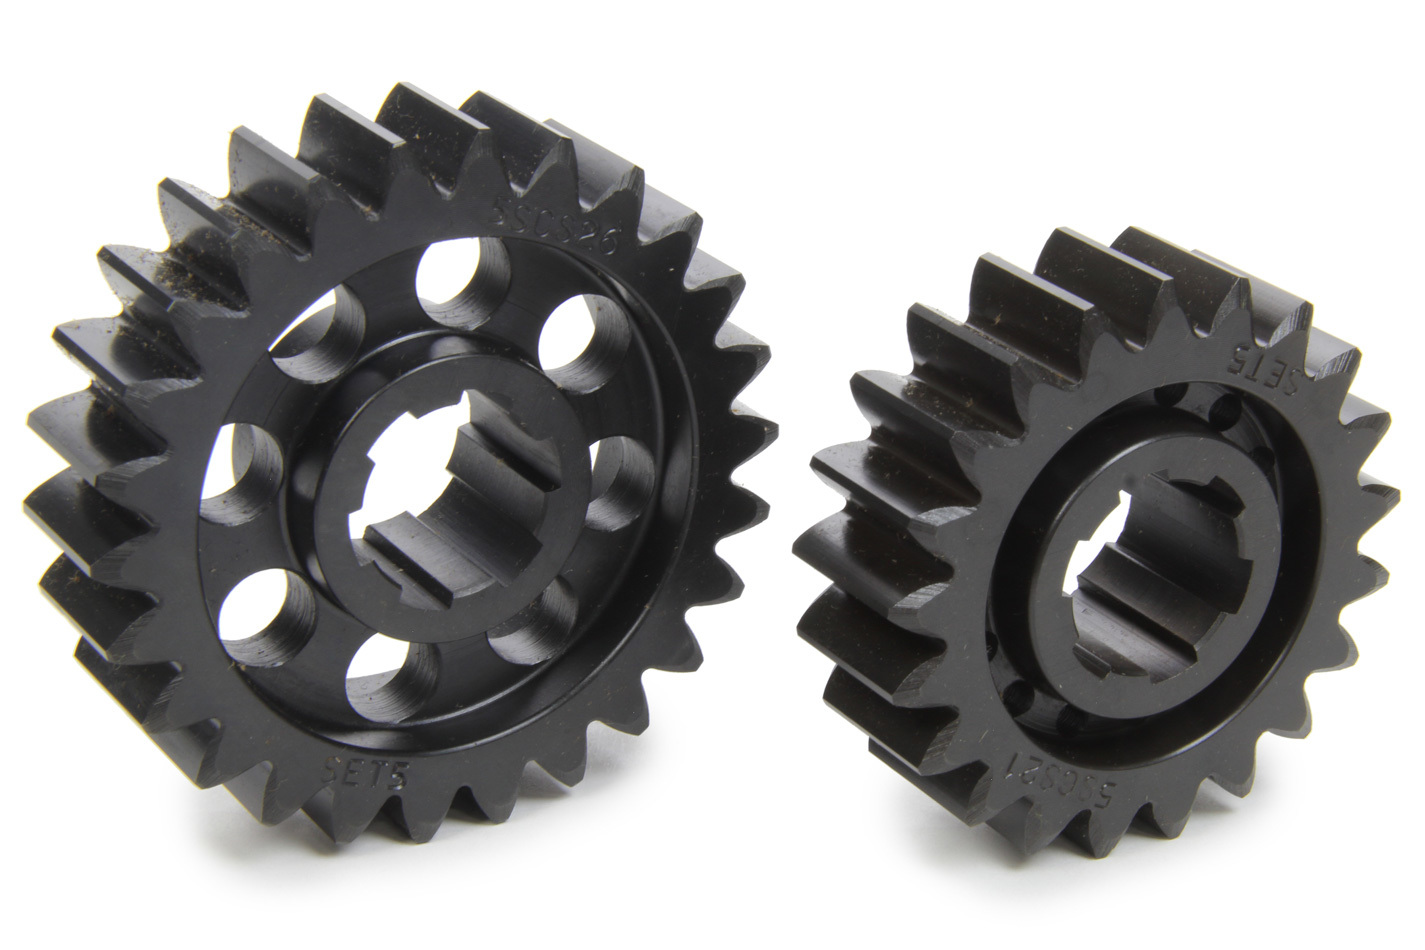 SCS Gears 65 Quick Change Gear Set, Professional, Set 65, 6 Spline, 4.11 Ratio 3.32 / 5.09, 4.33 Ratio 3.50 / 5.36, Steel, Each